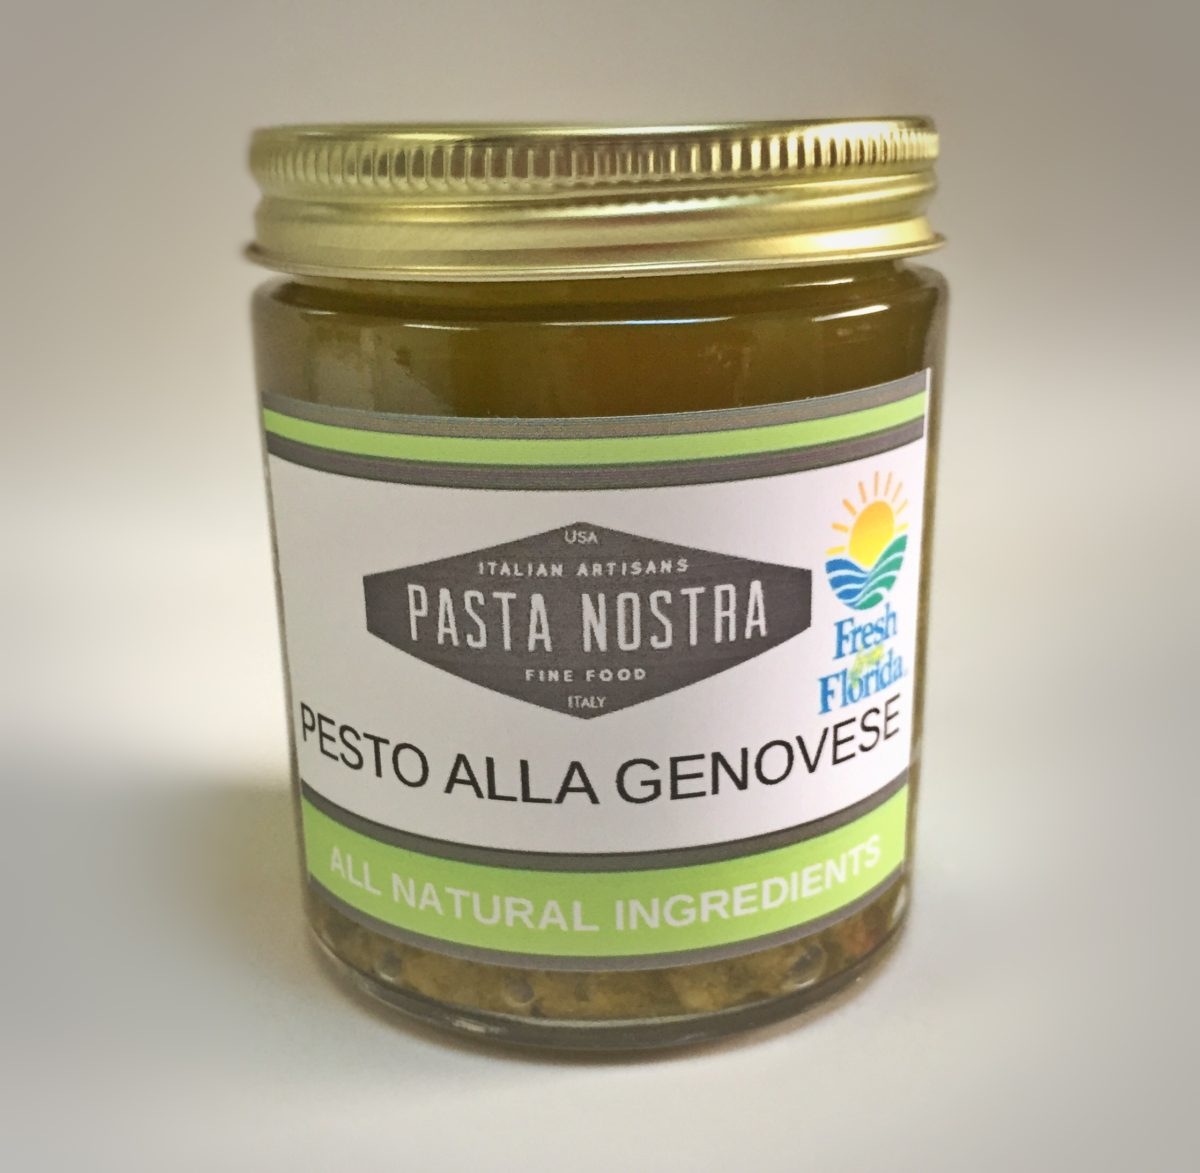 What can I do with pesto sauce?